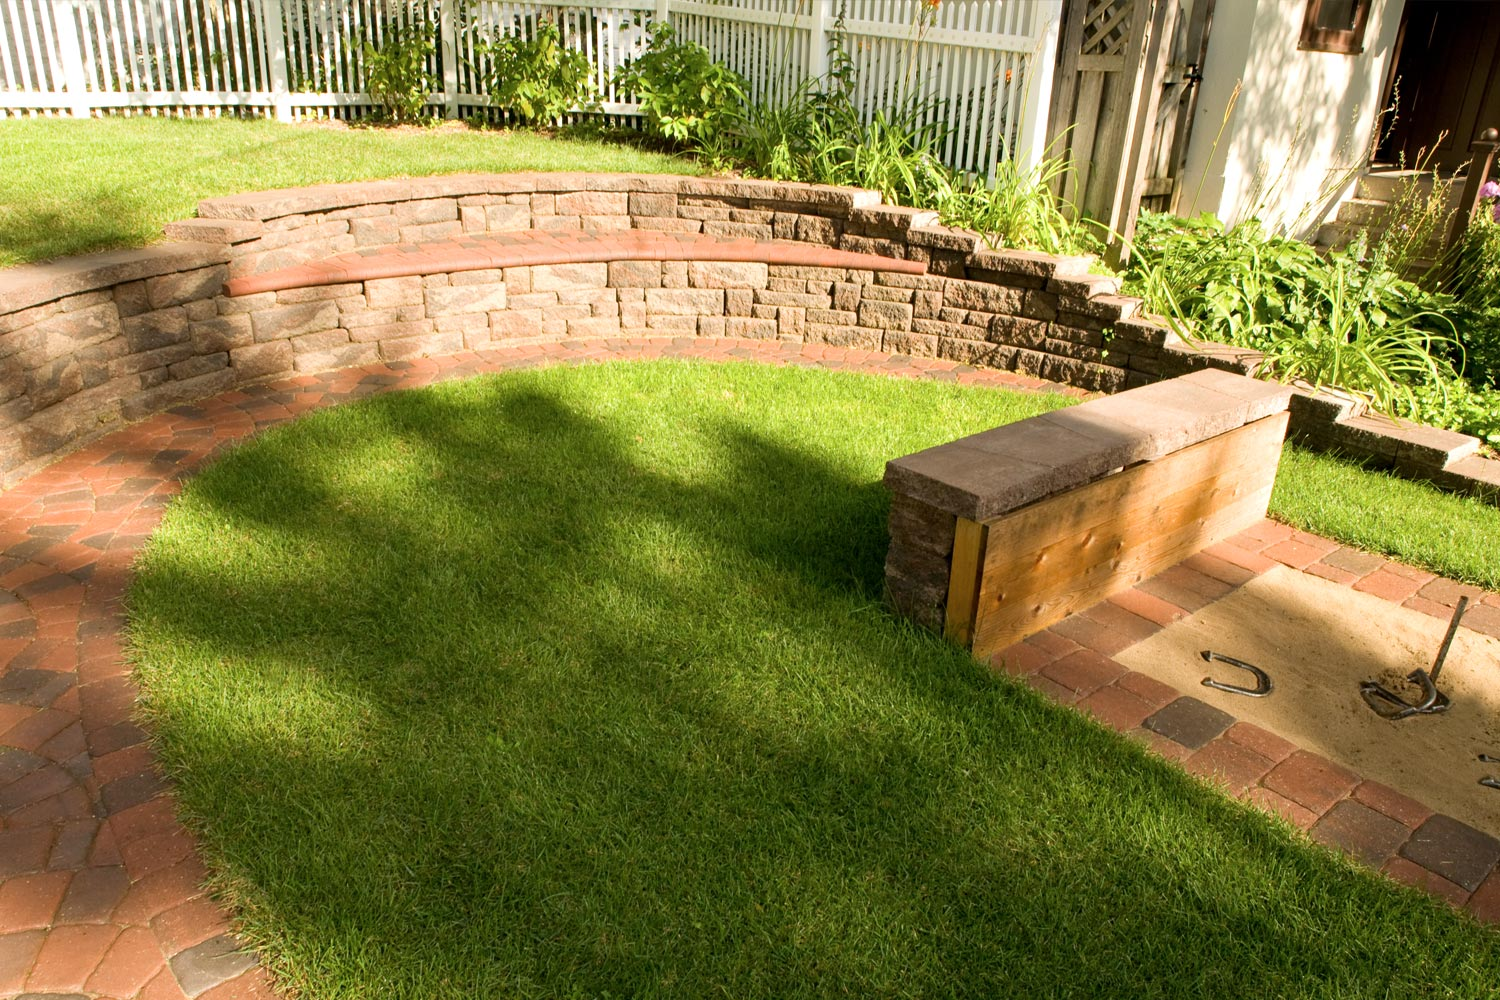 Concrete Block Seat Wall and Horseshoe Pitch in Minneapolis Mn Side Yard